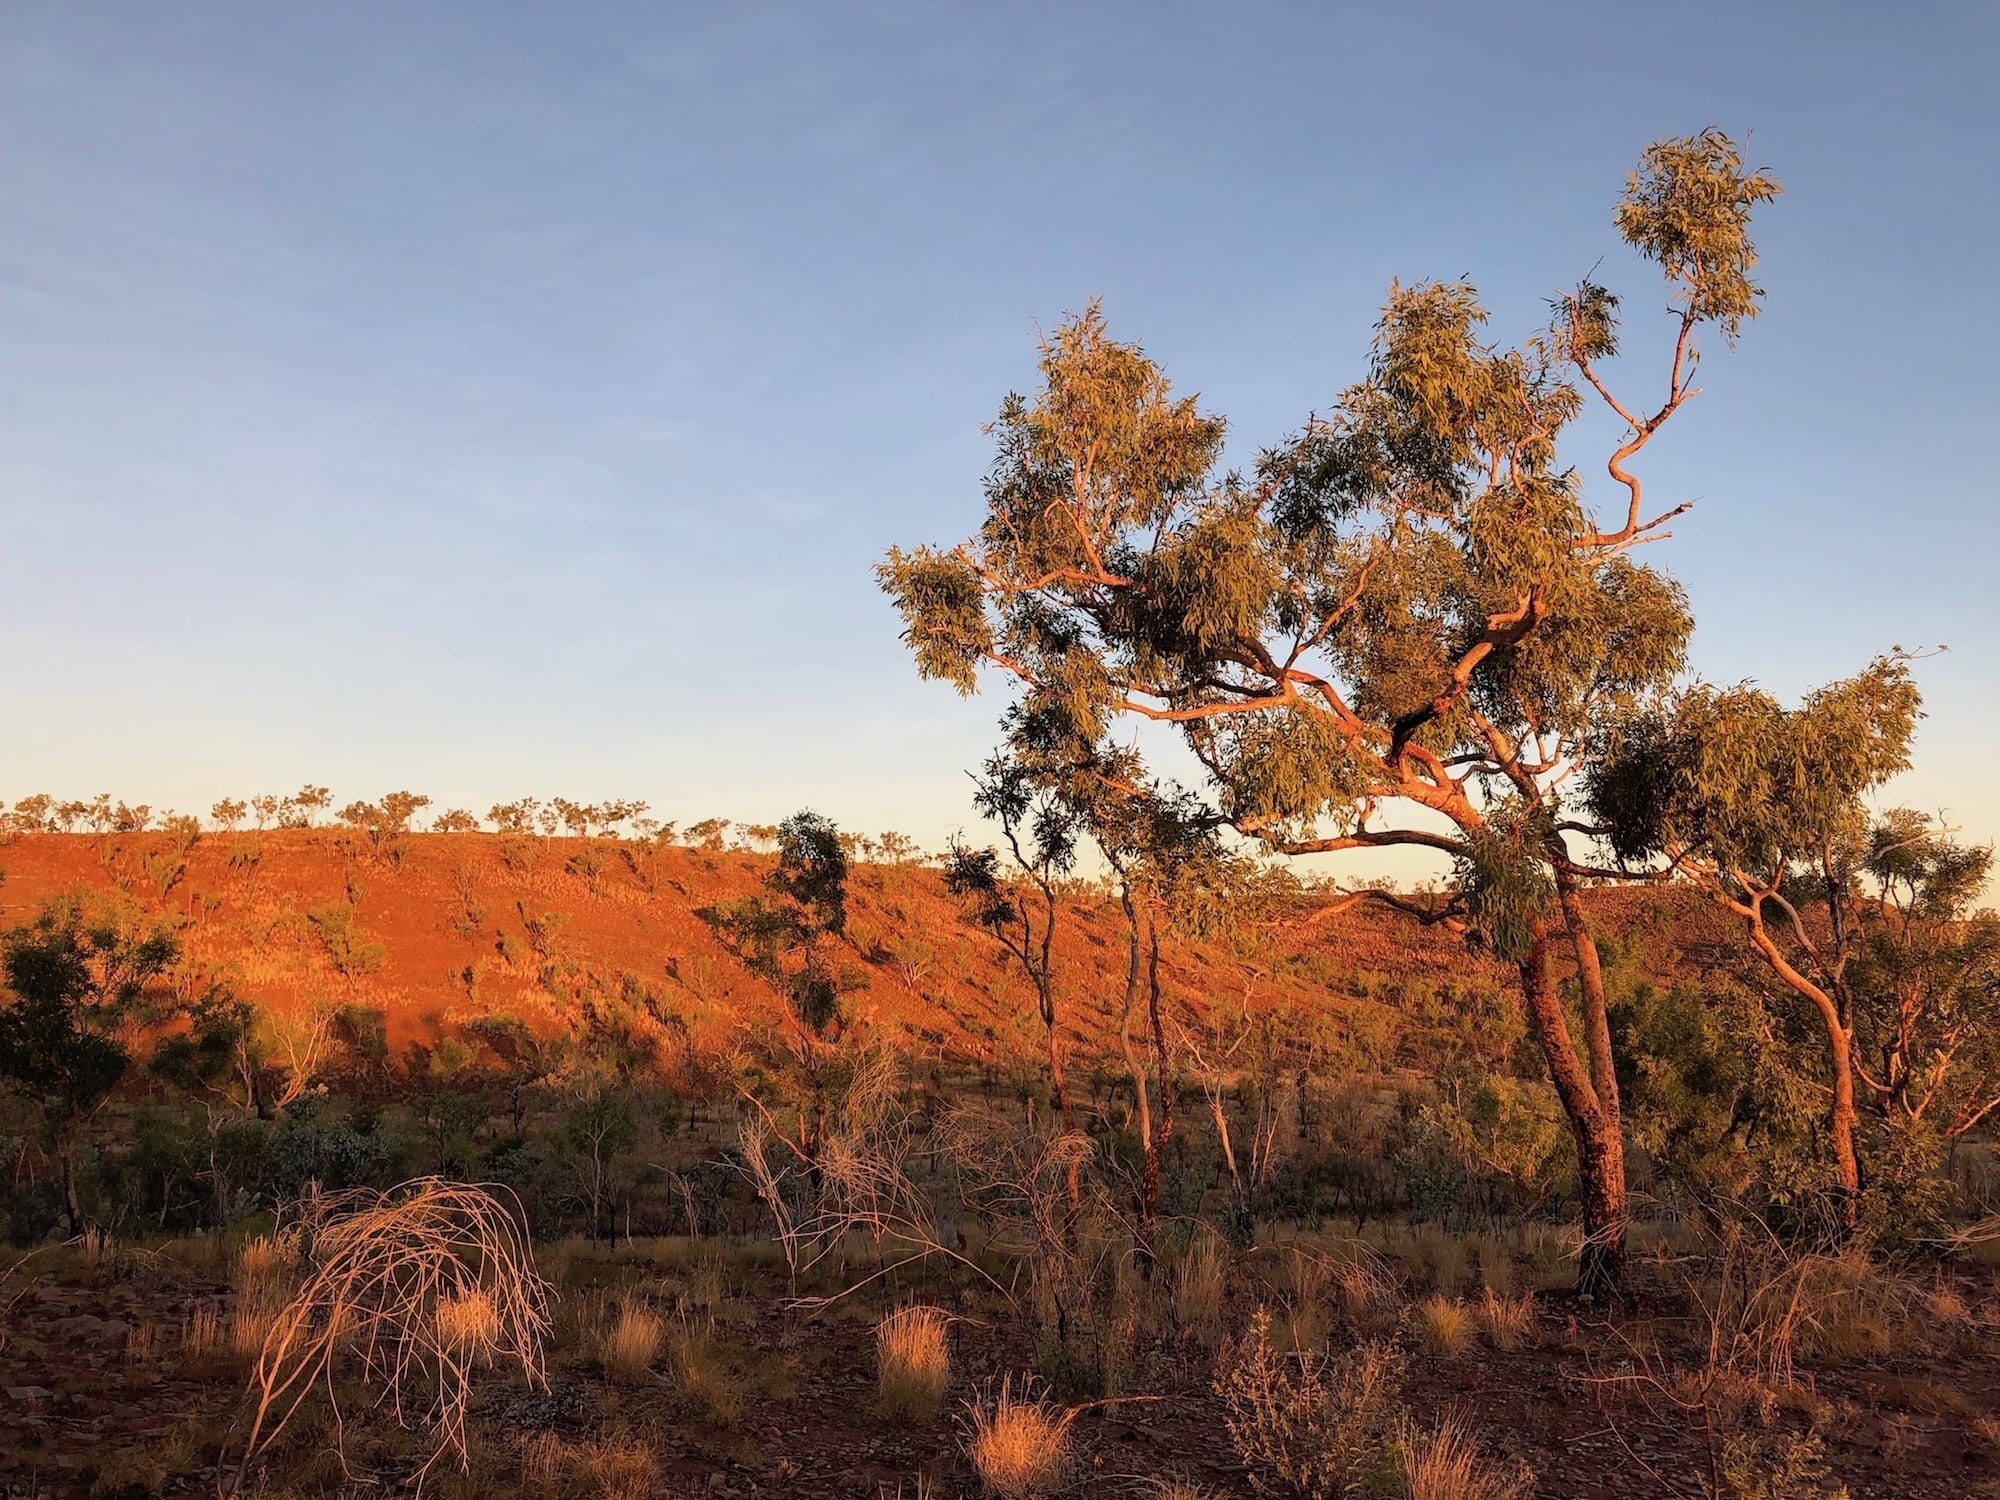 The colours of Judbarra / Gregory National Park are unbelievably beautiful.